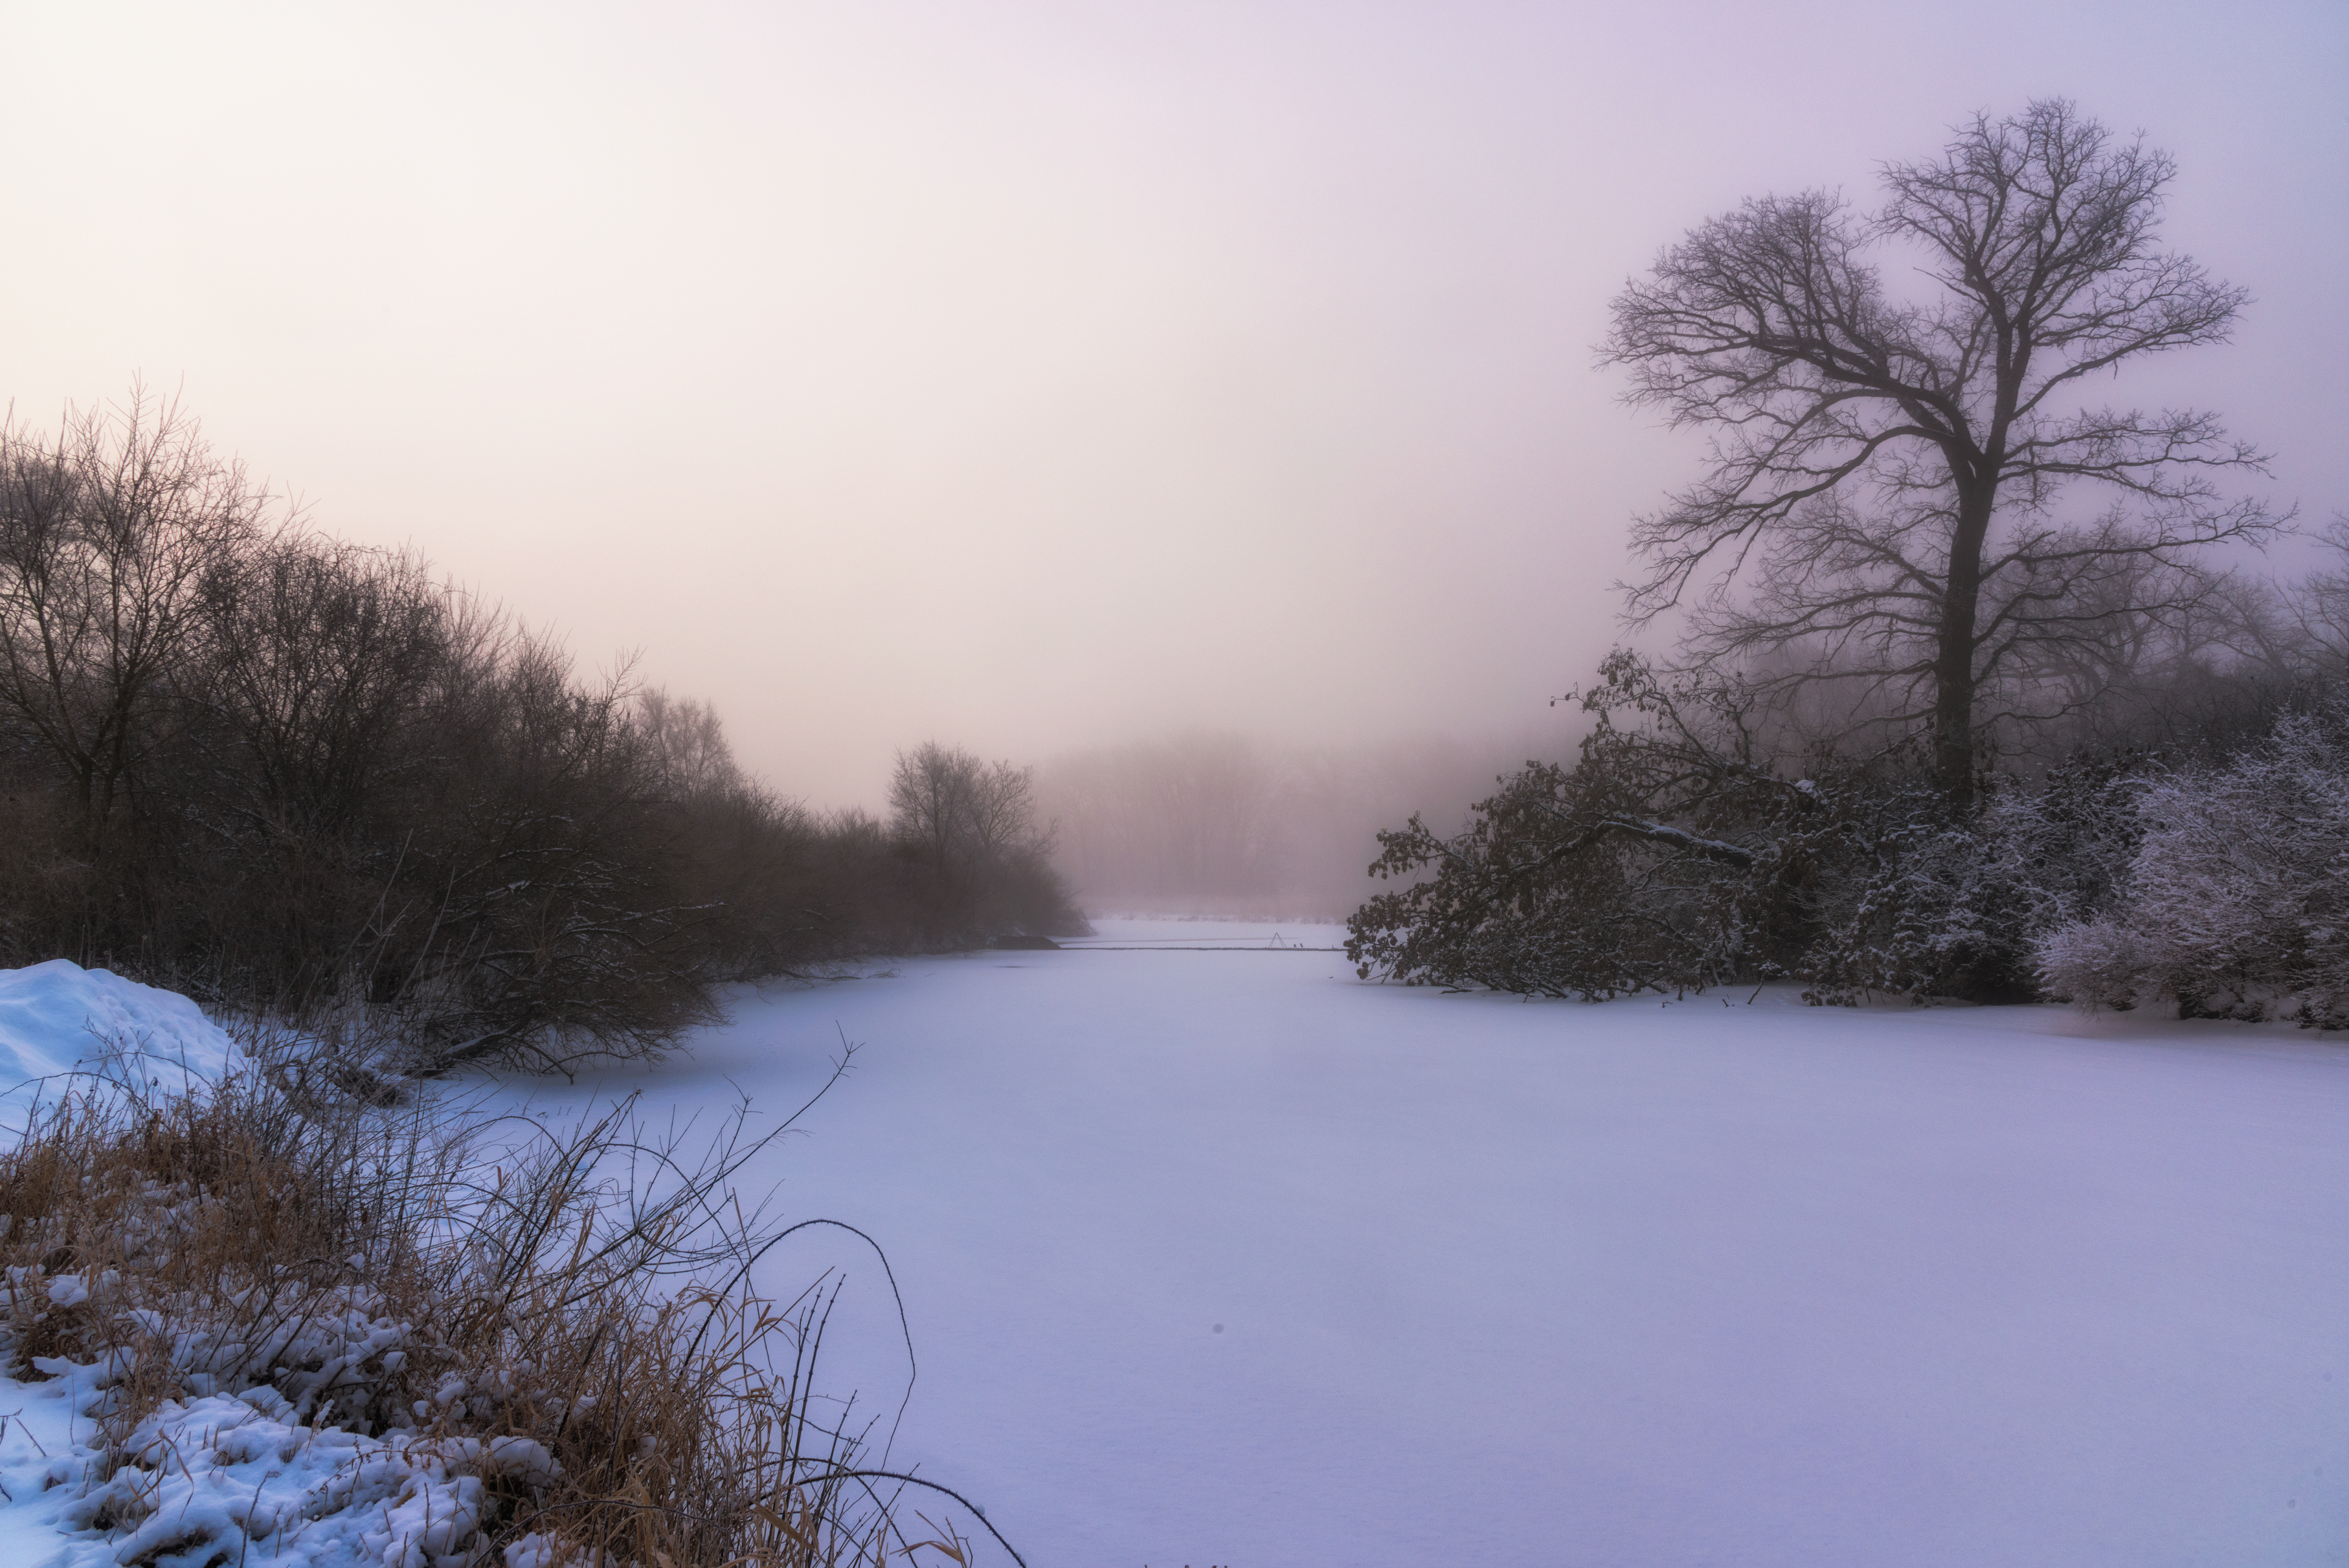 (1/2) Snow covers a pond on a foggy morning. Photo: Tim Chapman, landscape, winter, snow, pond, fog, tree